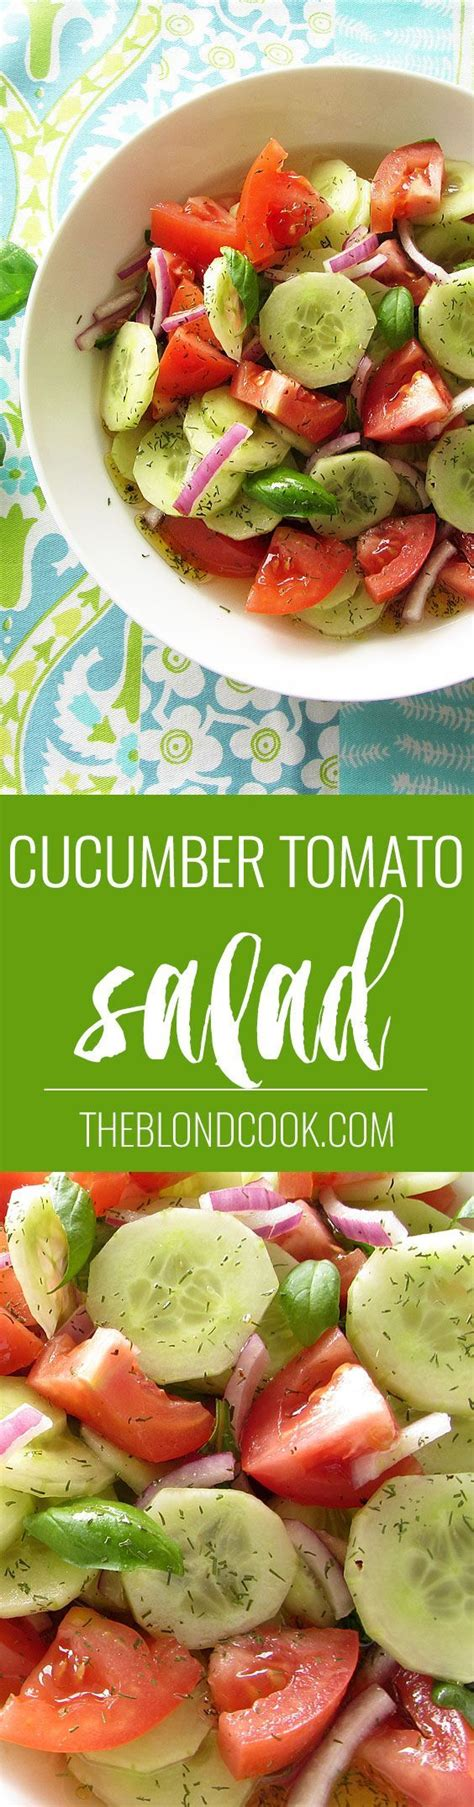 164 best images about healthy 25 best ideas about cucumber salad on